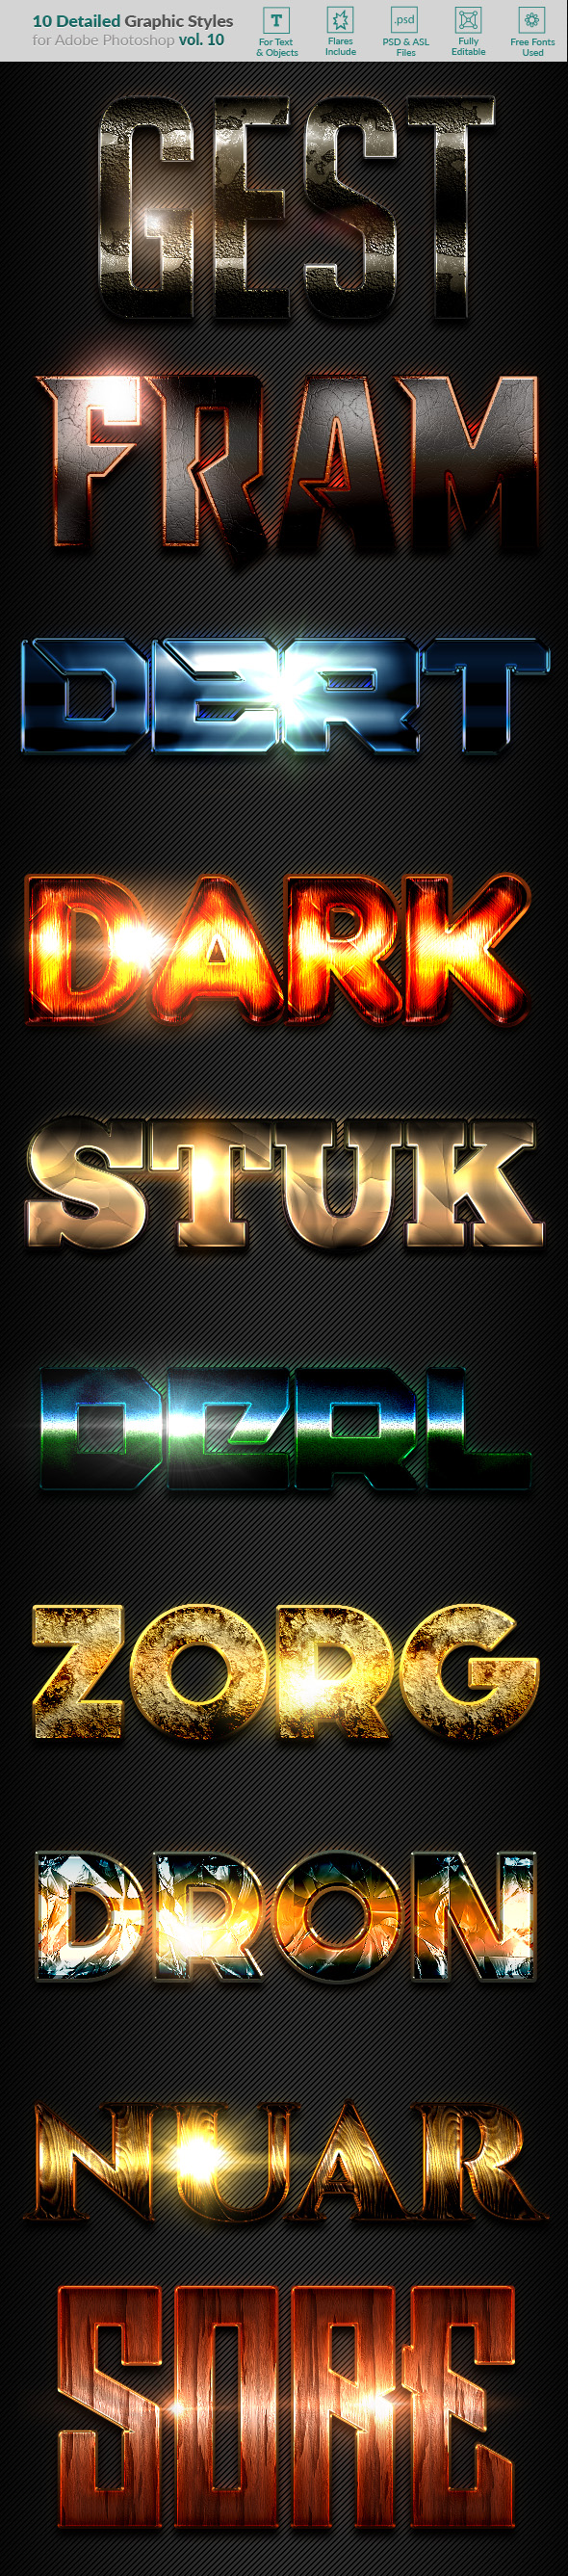 GraphicRiver 10 Text Effects Vol 10 20234653